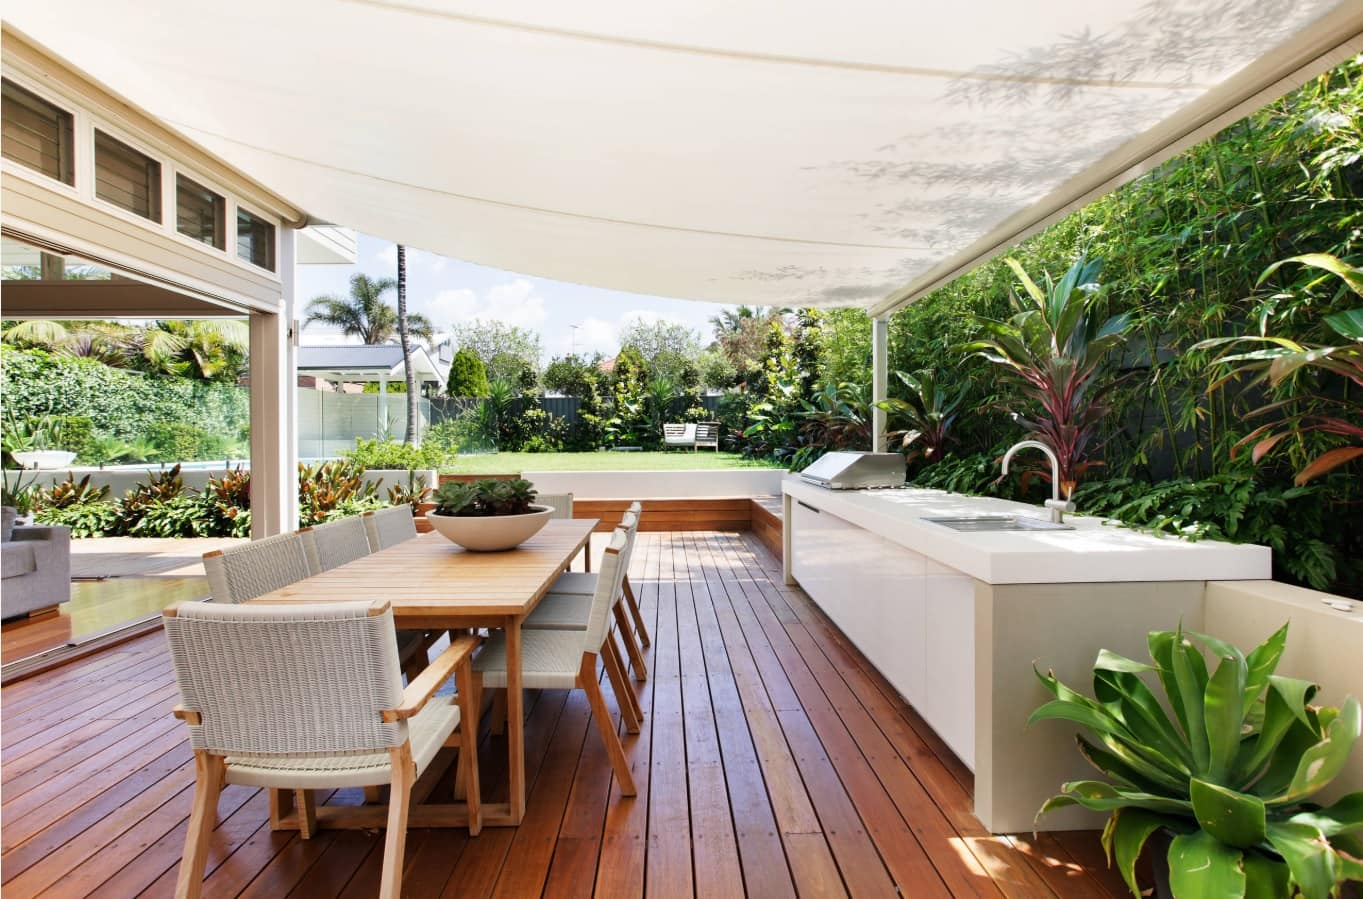 Retractable Patio Awnings Offer An Amazing Way to Upgrade Your Home. Large backyard deck patio with dining and barbecue zones